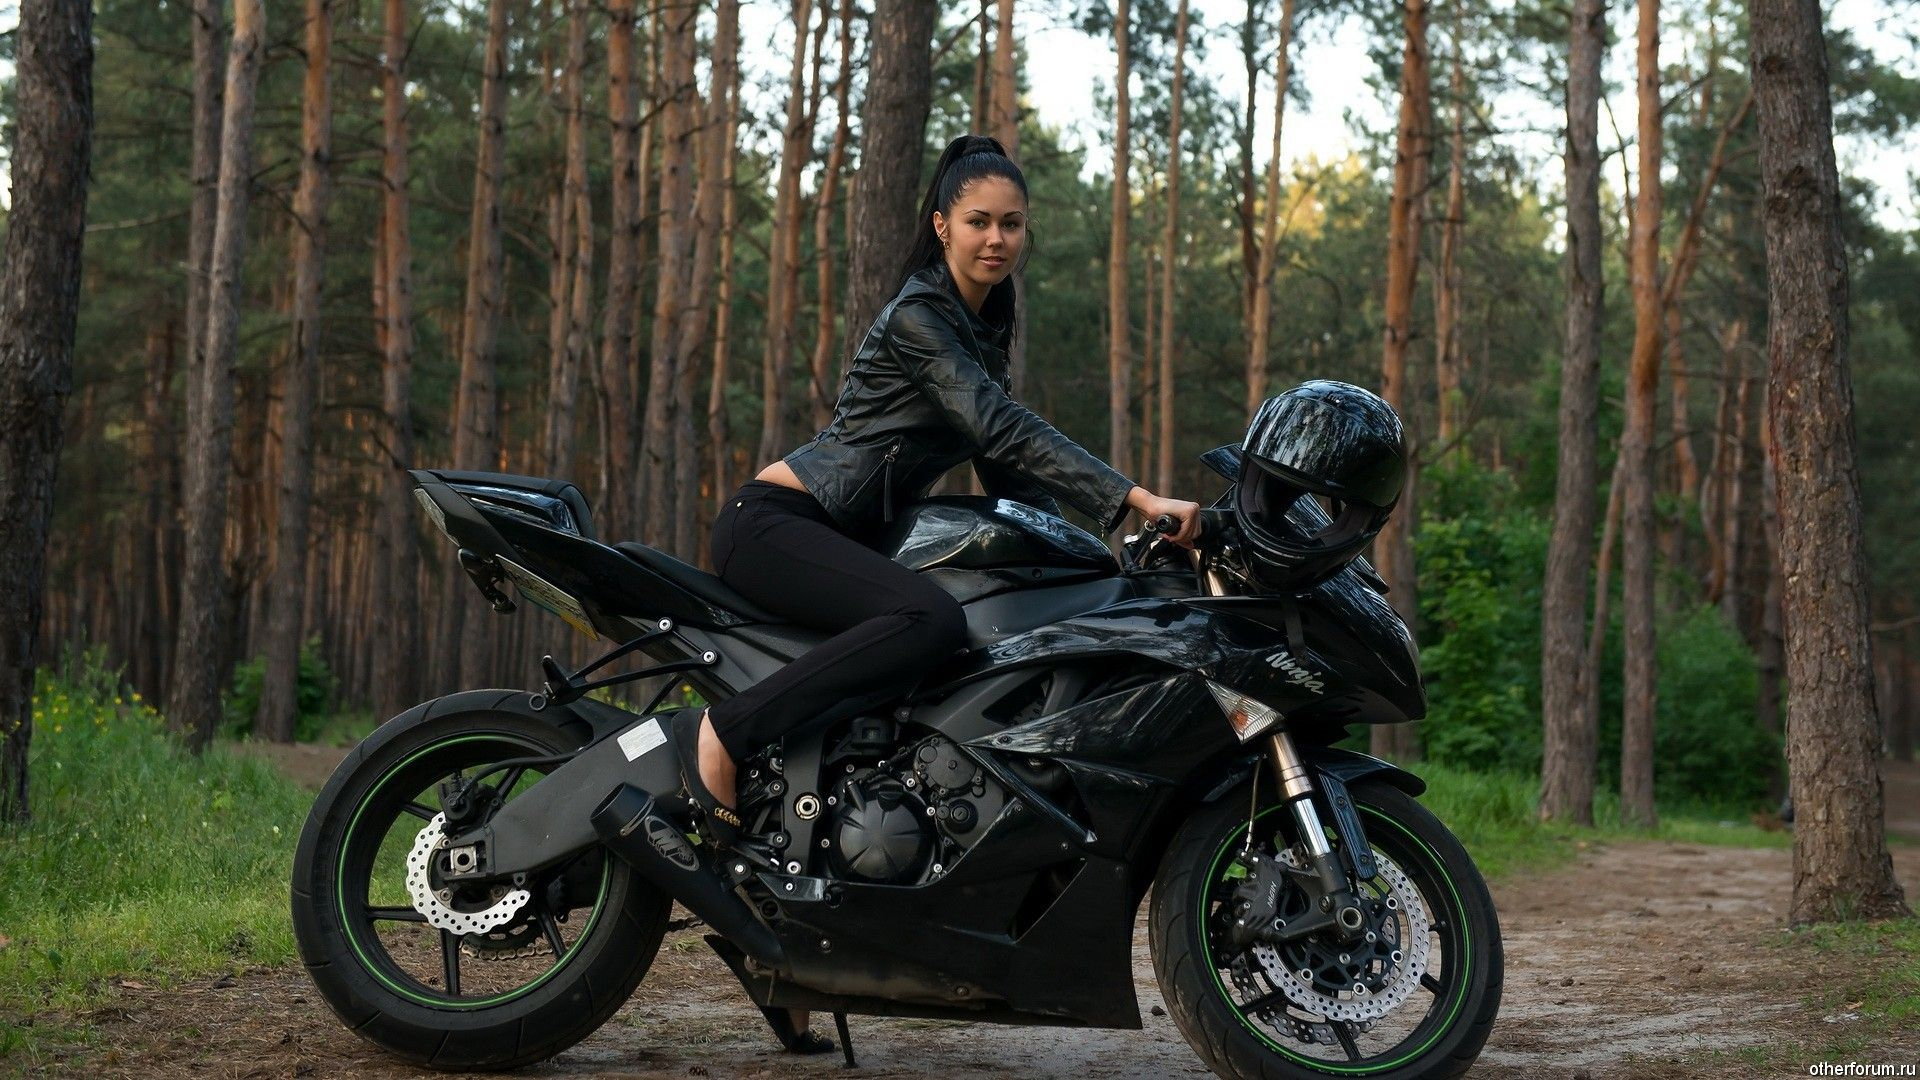 Ok It S Incredibly Unfair To Combine All Women Into One Stereotype But For This Group Of Females They Motorcycle Girl Ninja Motorcycle Motorcycle Wallpaper